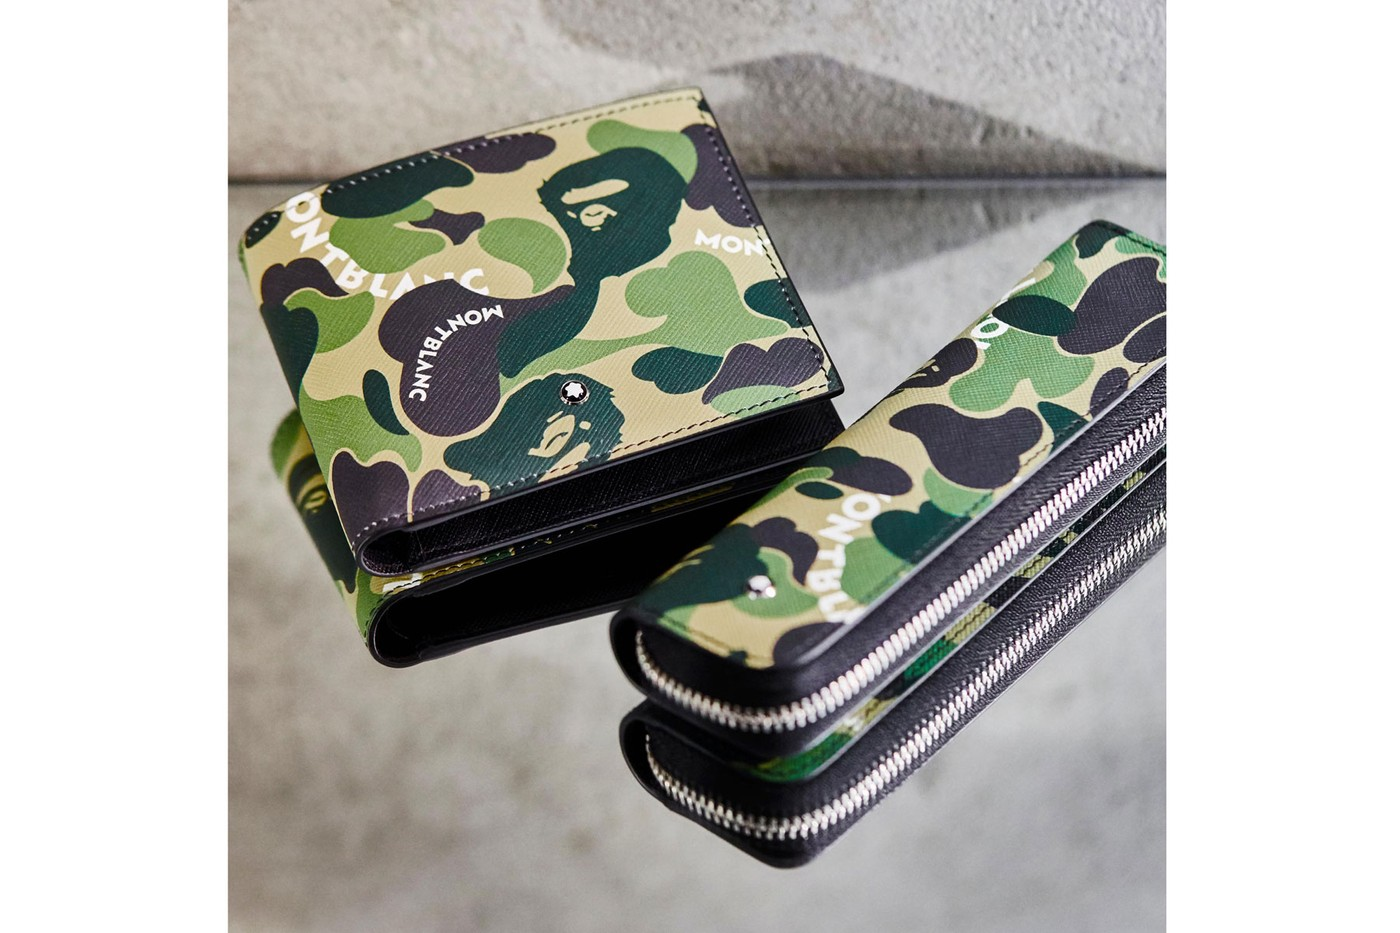 https___hypebeast.com_image_2019_06_bape-a-bathing-ape-montblanc-ss19-leather-goods-collection-12.jpg